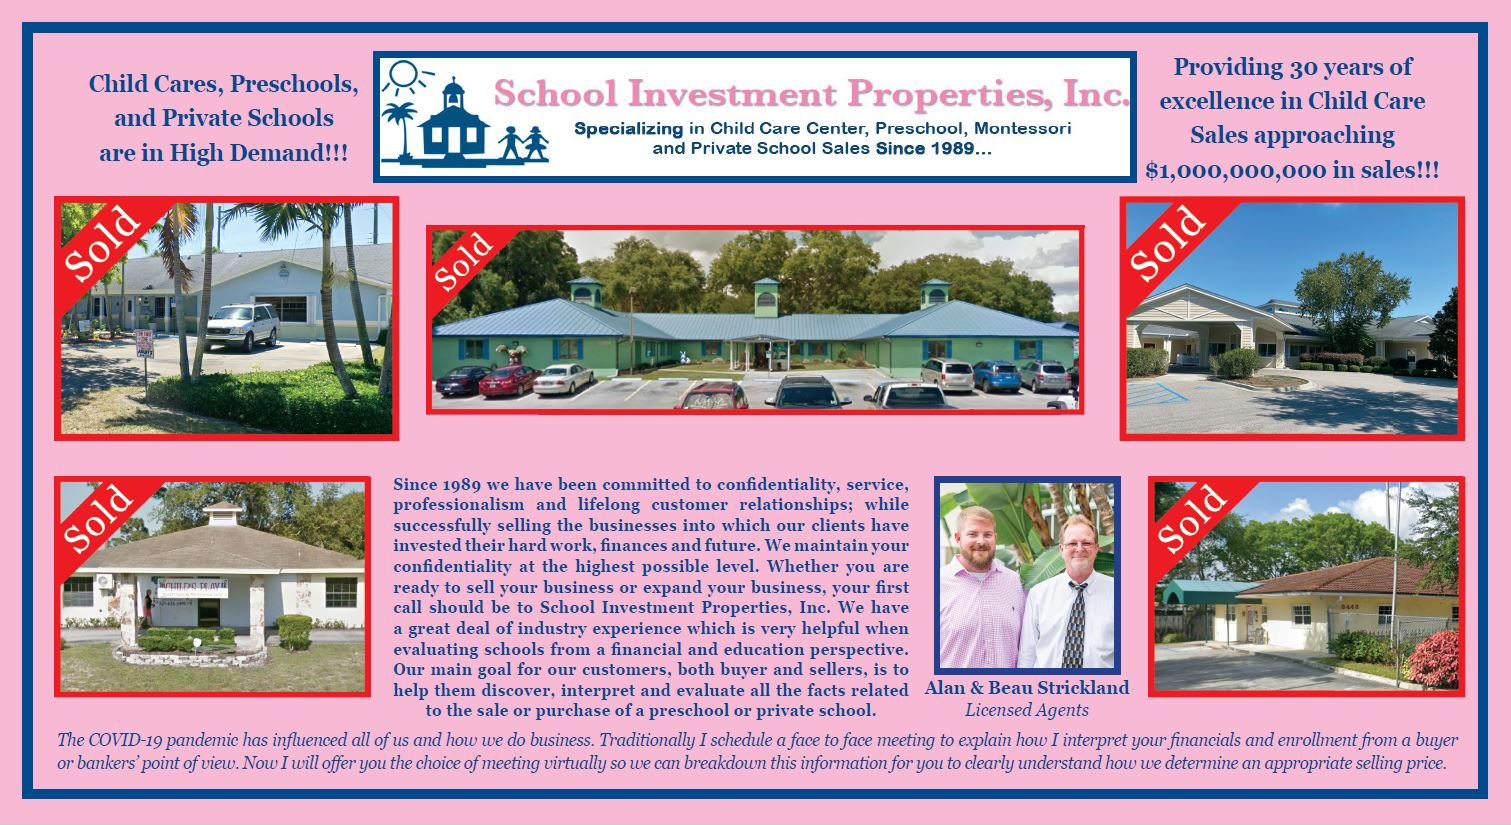 Alan & Beau Strickland from School Investment Properties